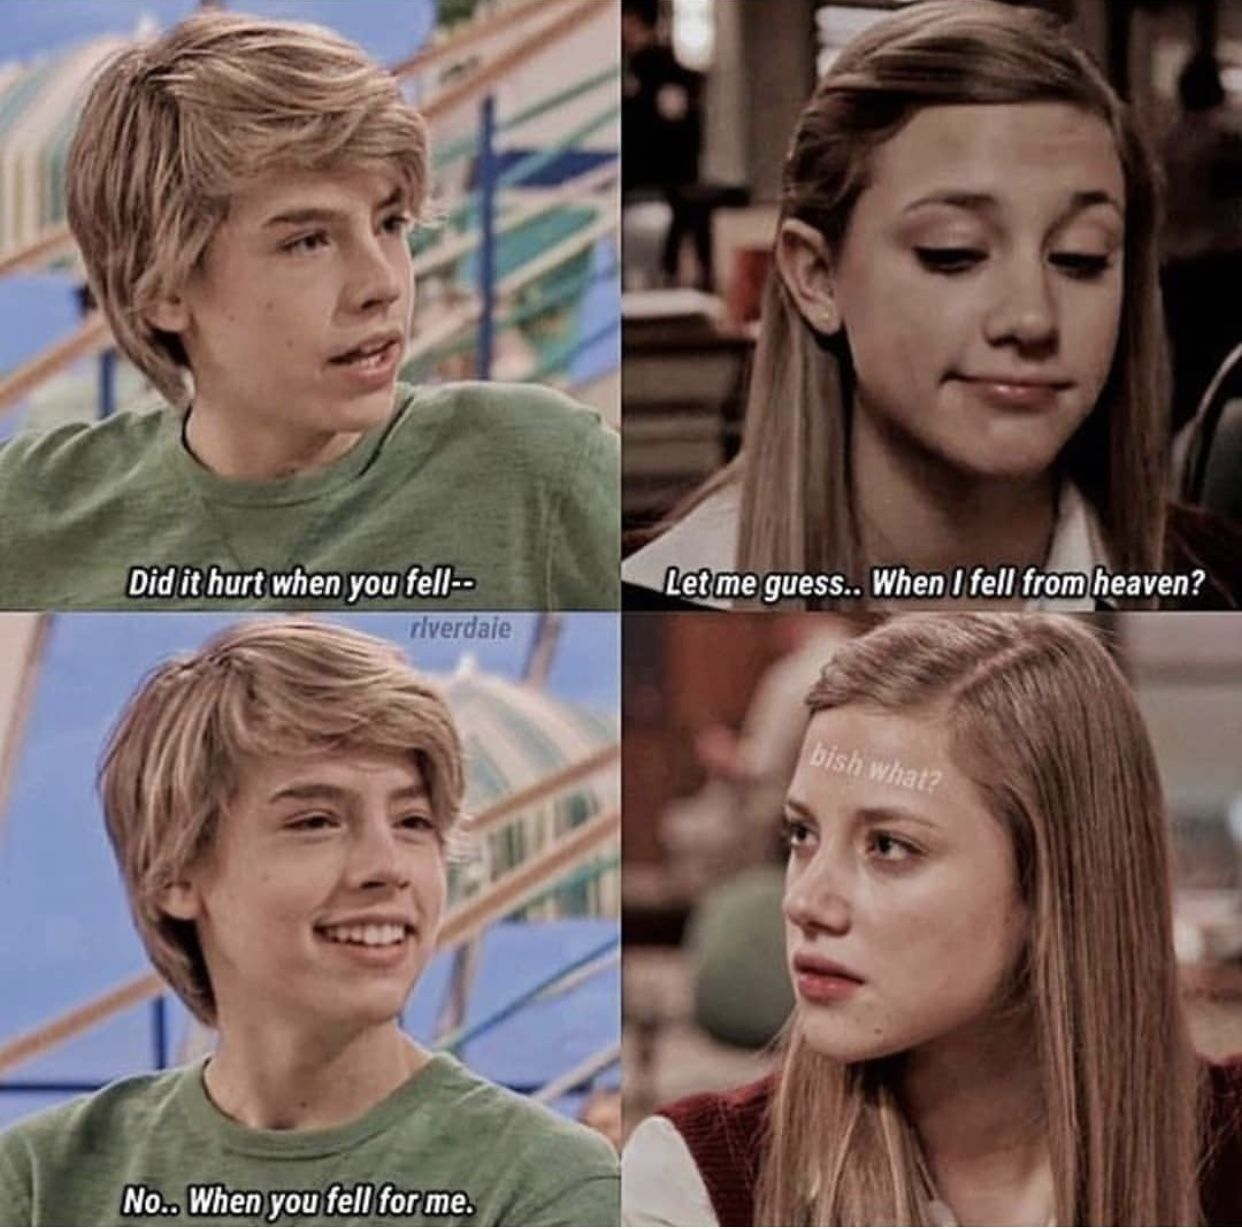 Riverdaleee #coleanddylansprouse